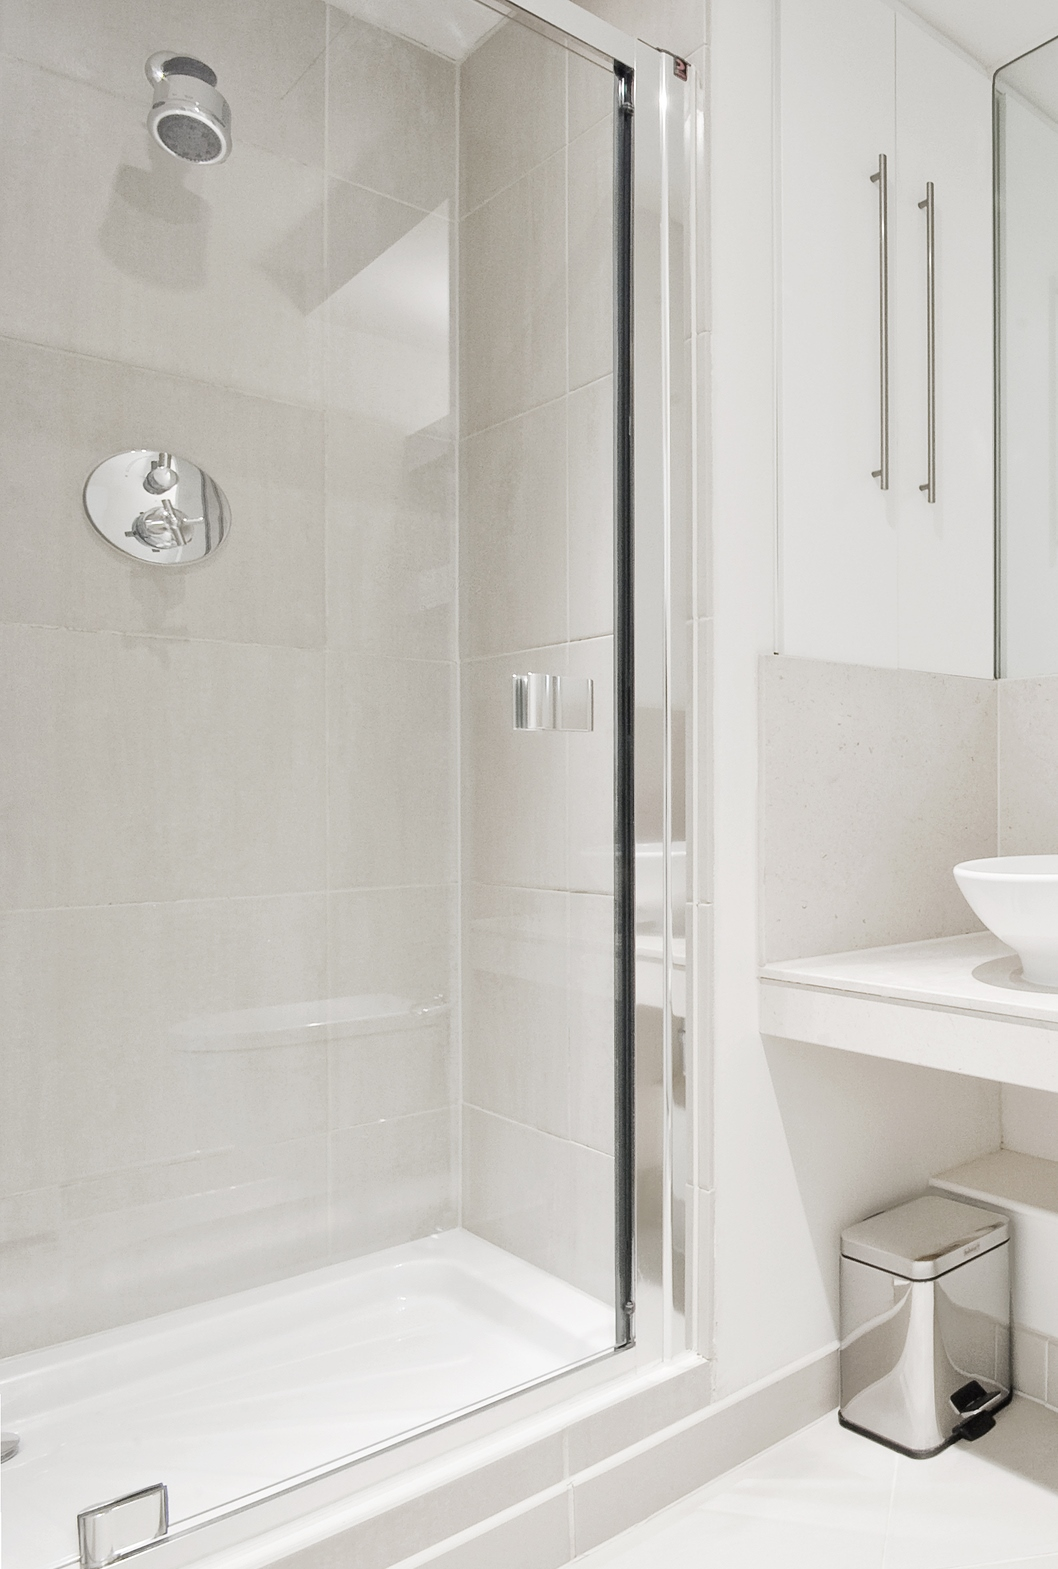 Tub To Shower Conversion One Day Shower Services In